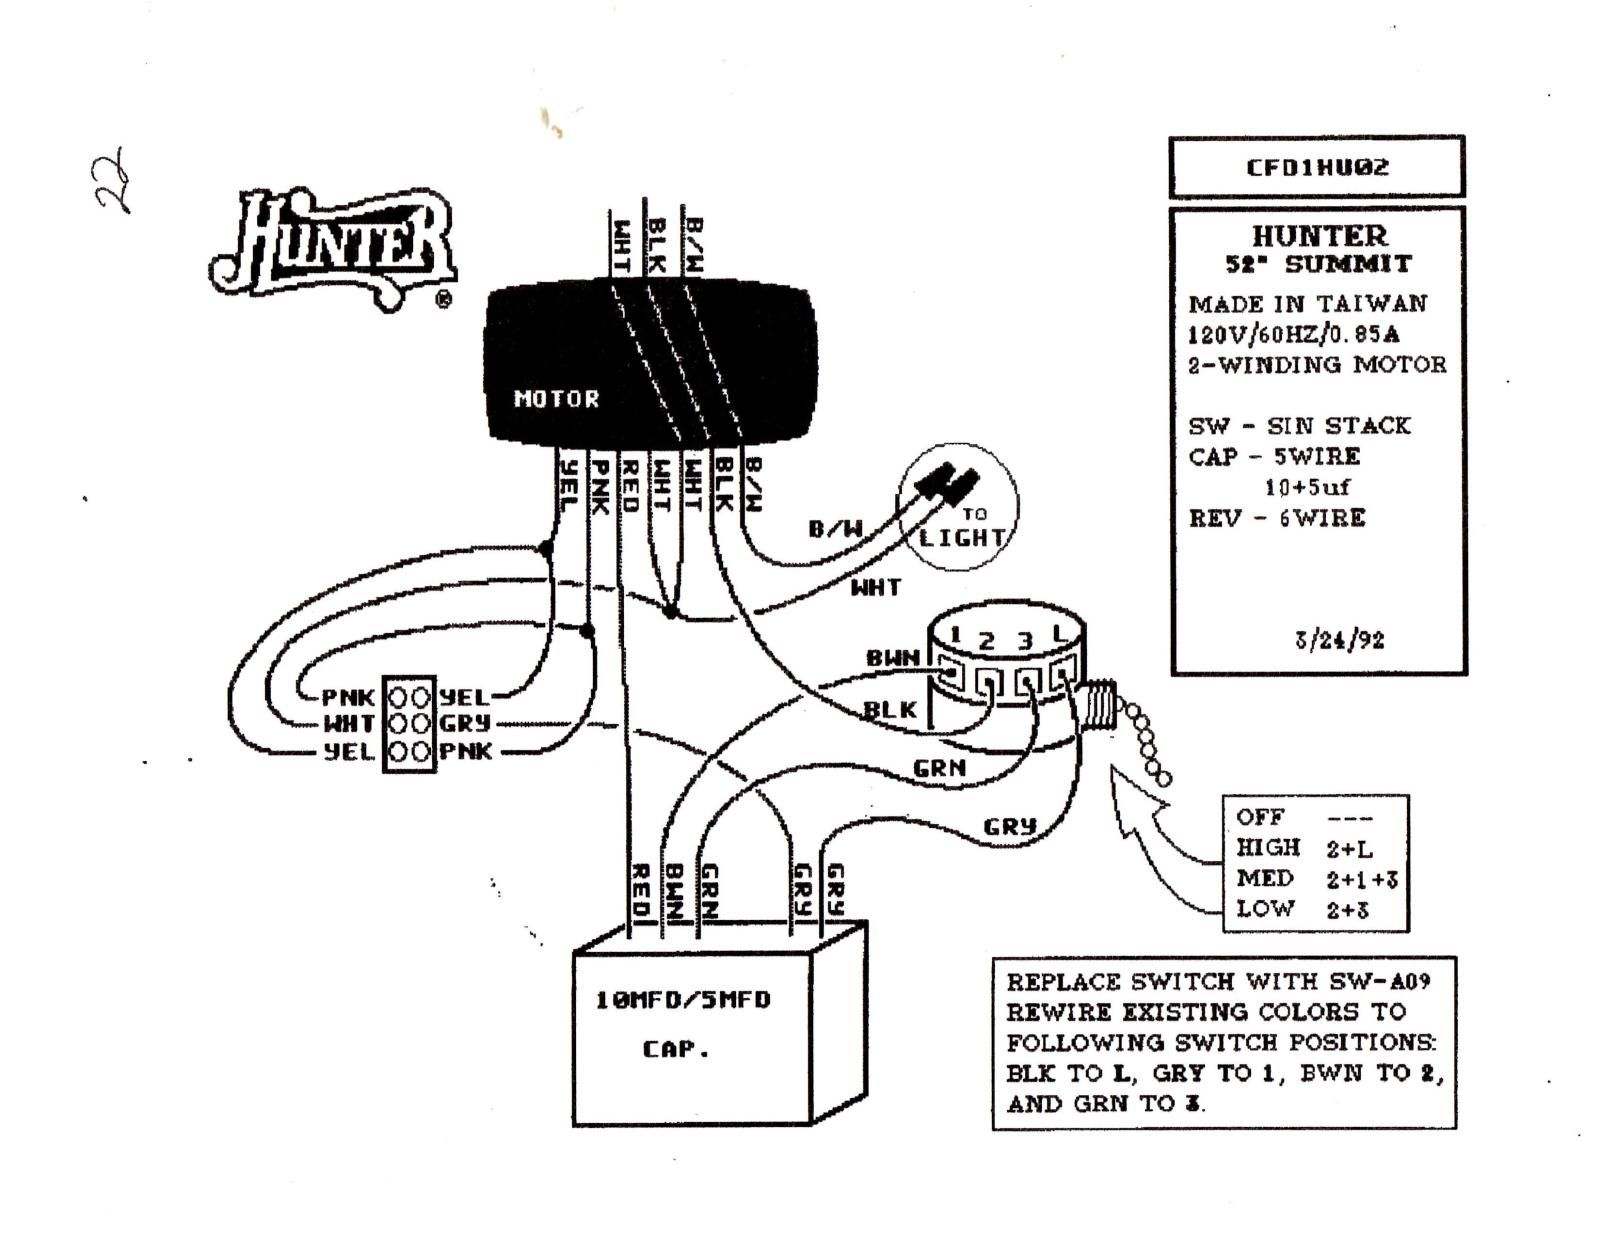 Hunter ceiling fan speed switch wiring diagram were you aware